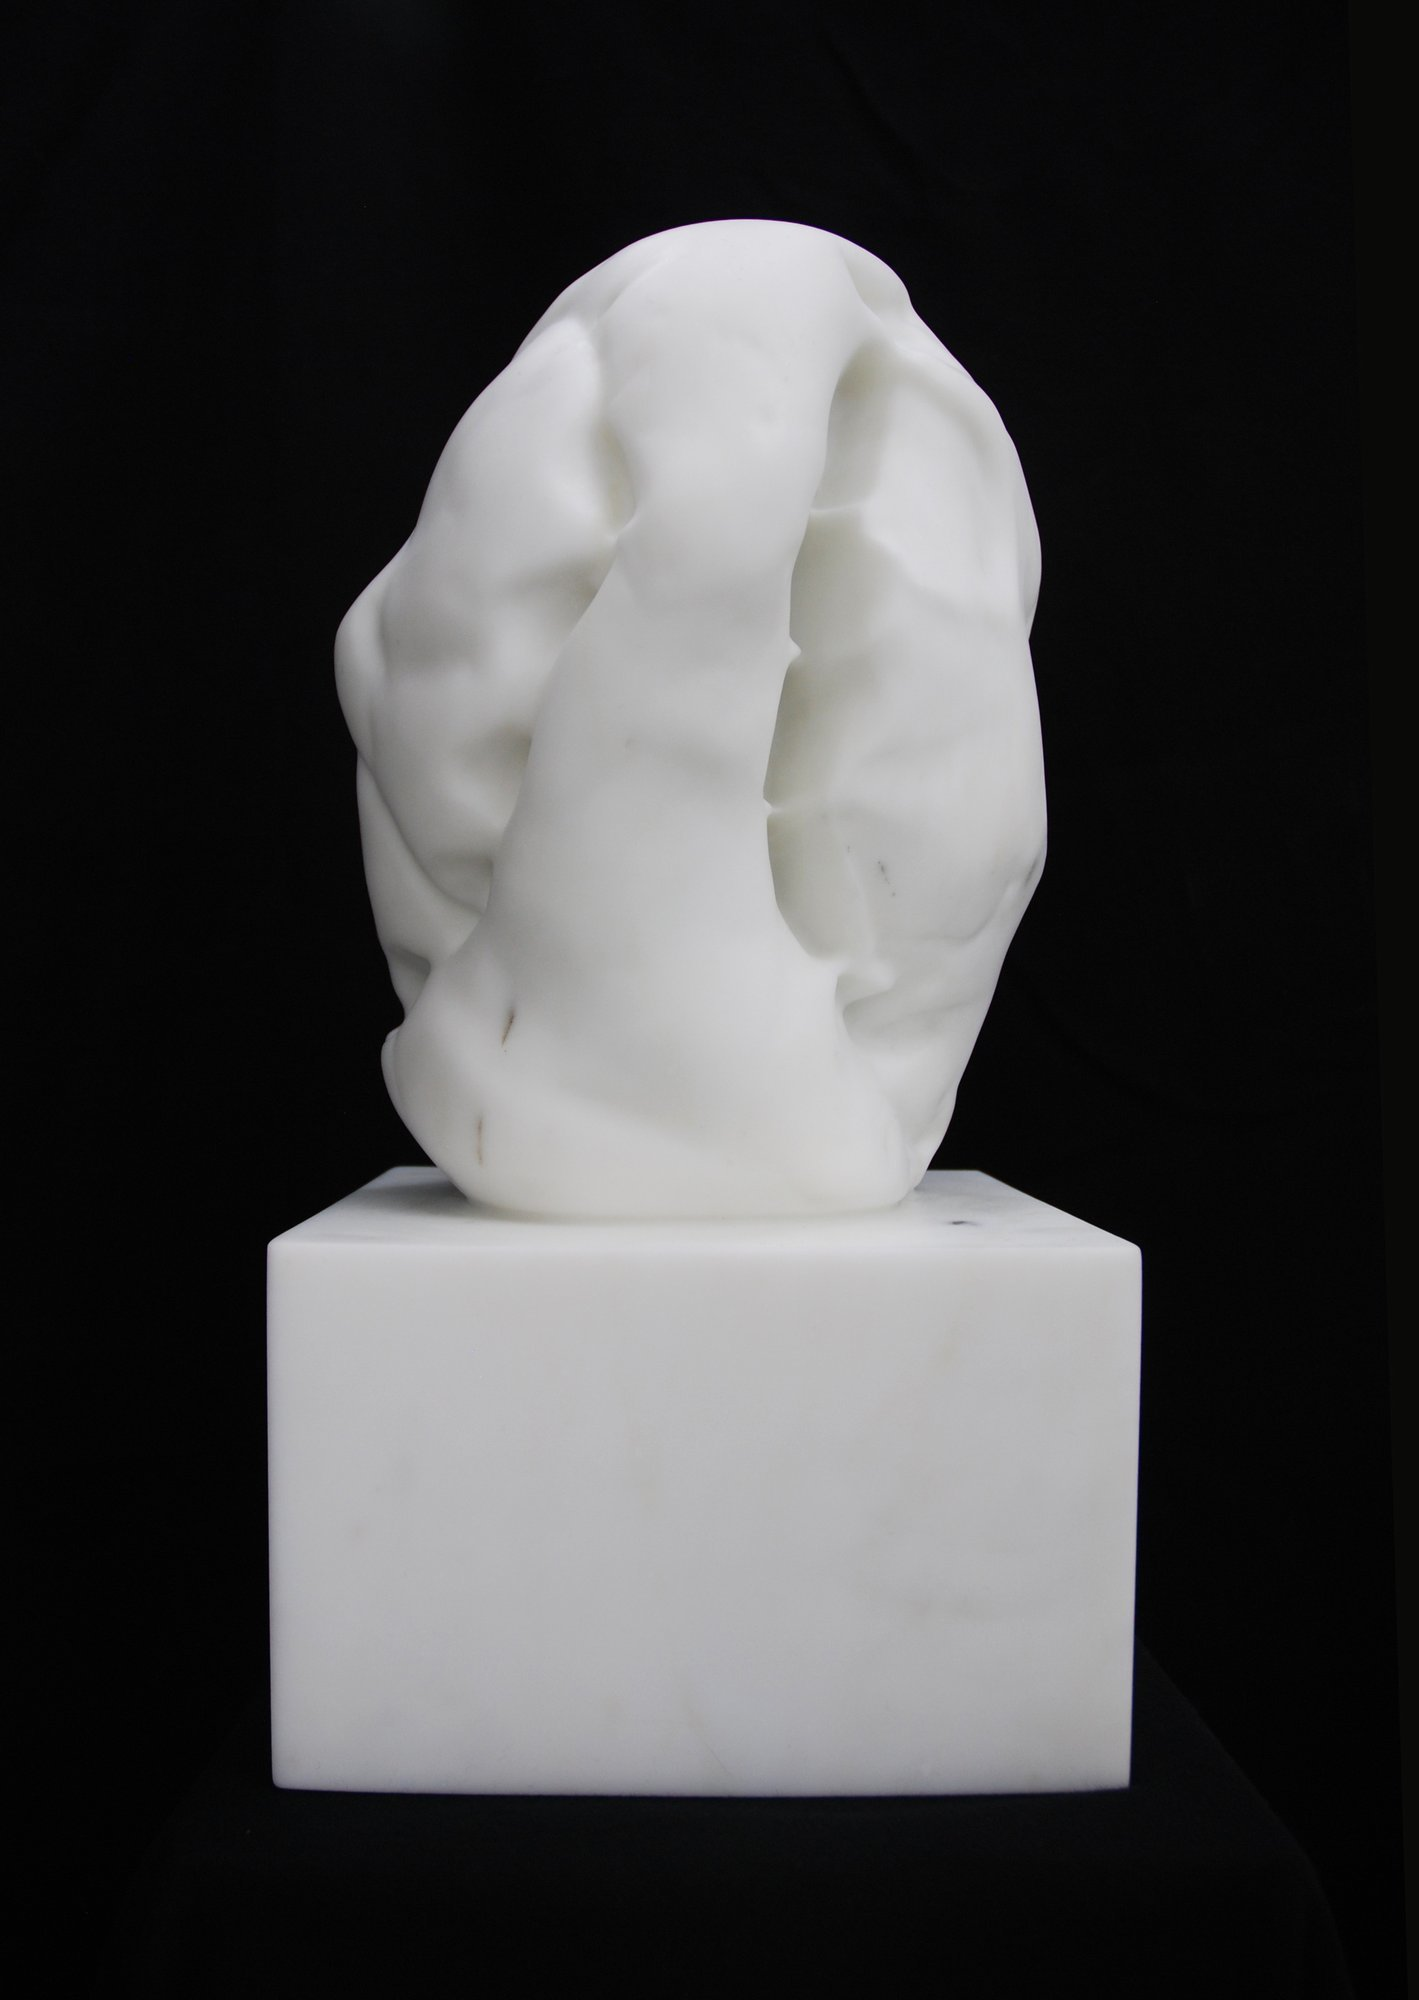 Untitled (VIII), 2013, Statuario Michelangelo marble, 49 x 25 x 23.5 cm. Unique